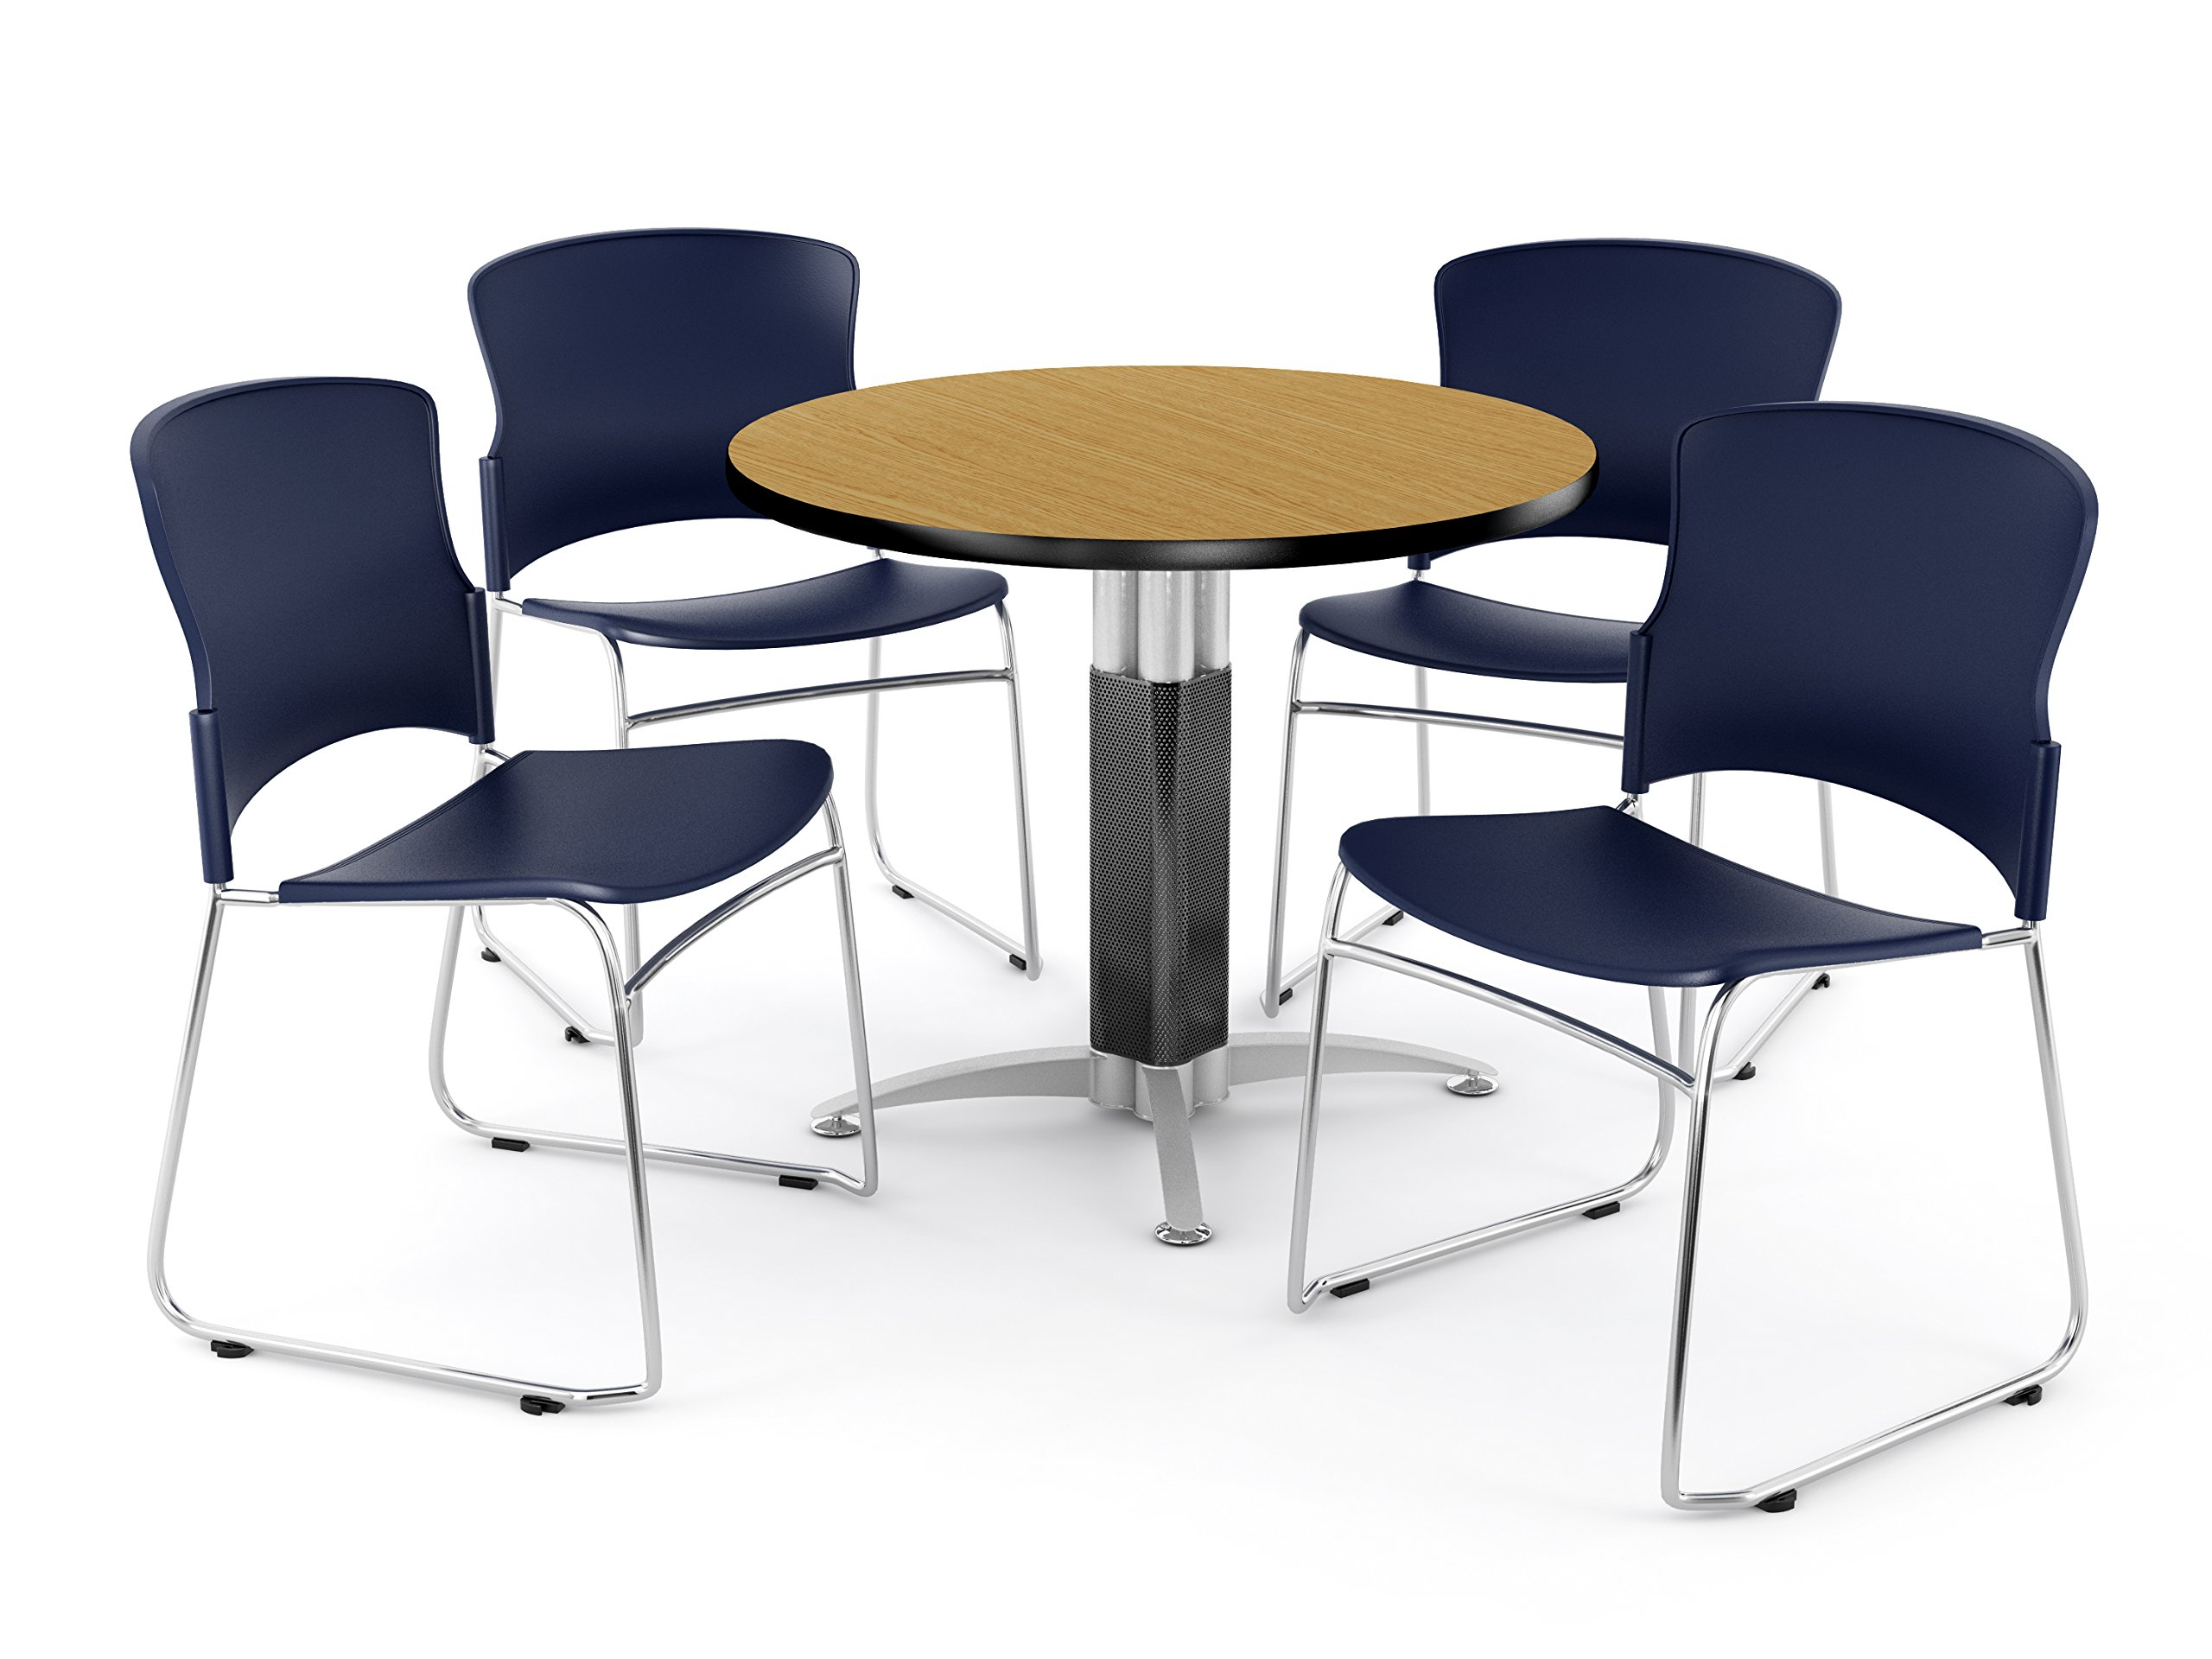 OFM PKG-BRK-027-0016 Breakroom Package, Oak Table/Navy Chair by OFM